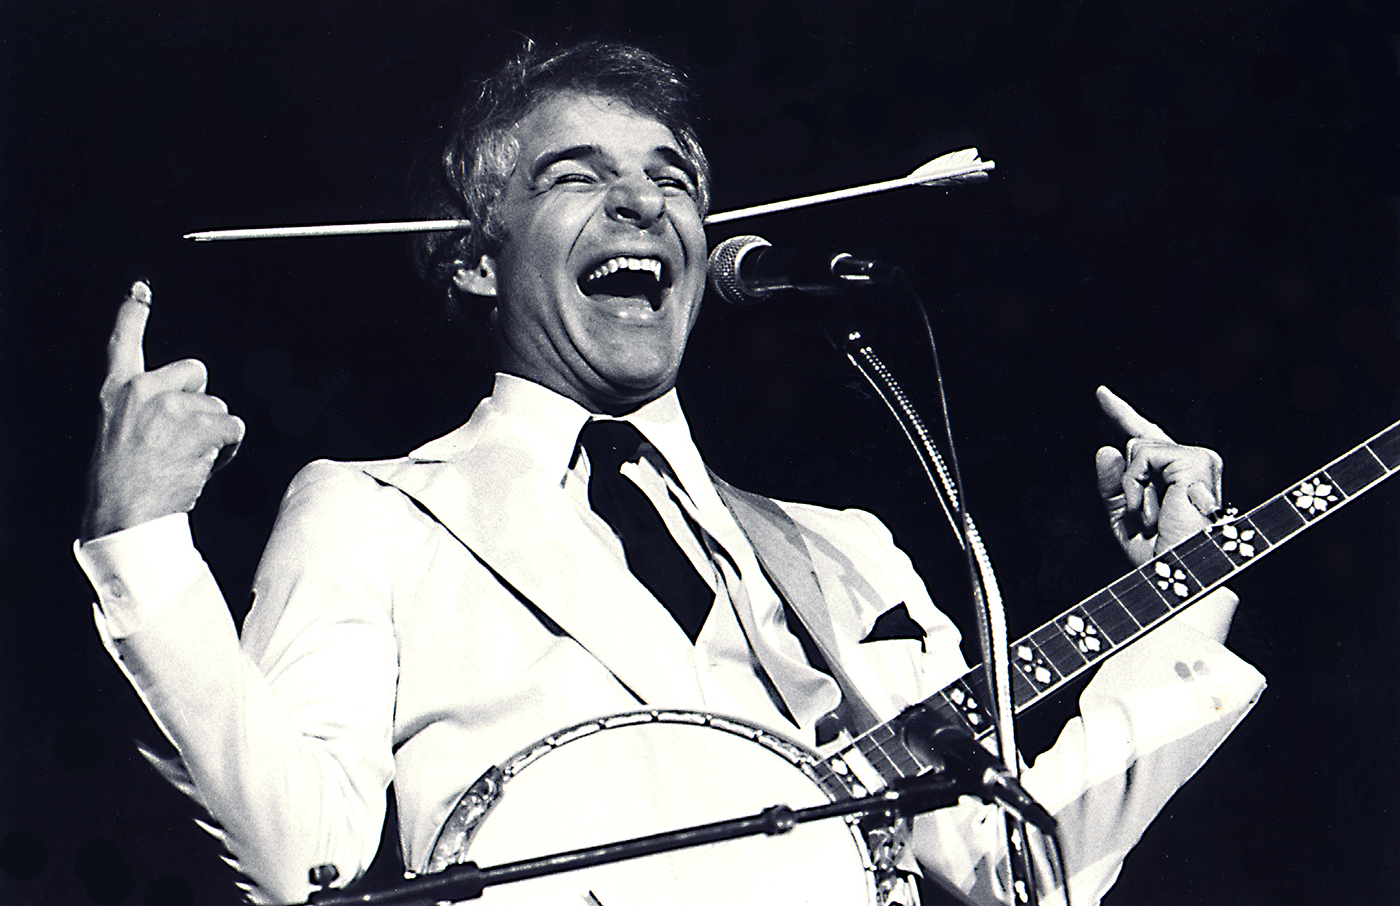 Steve Martin (How to Stay Motivated in Life and Work)